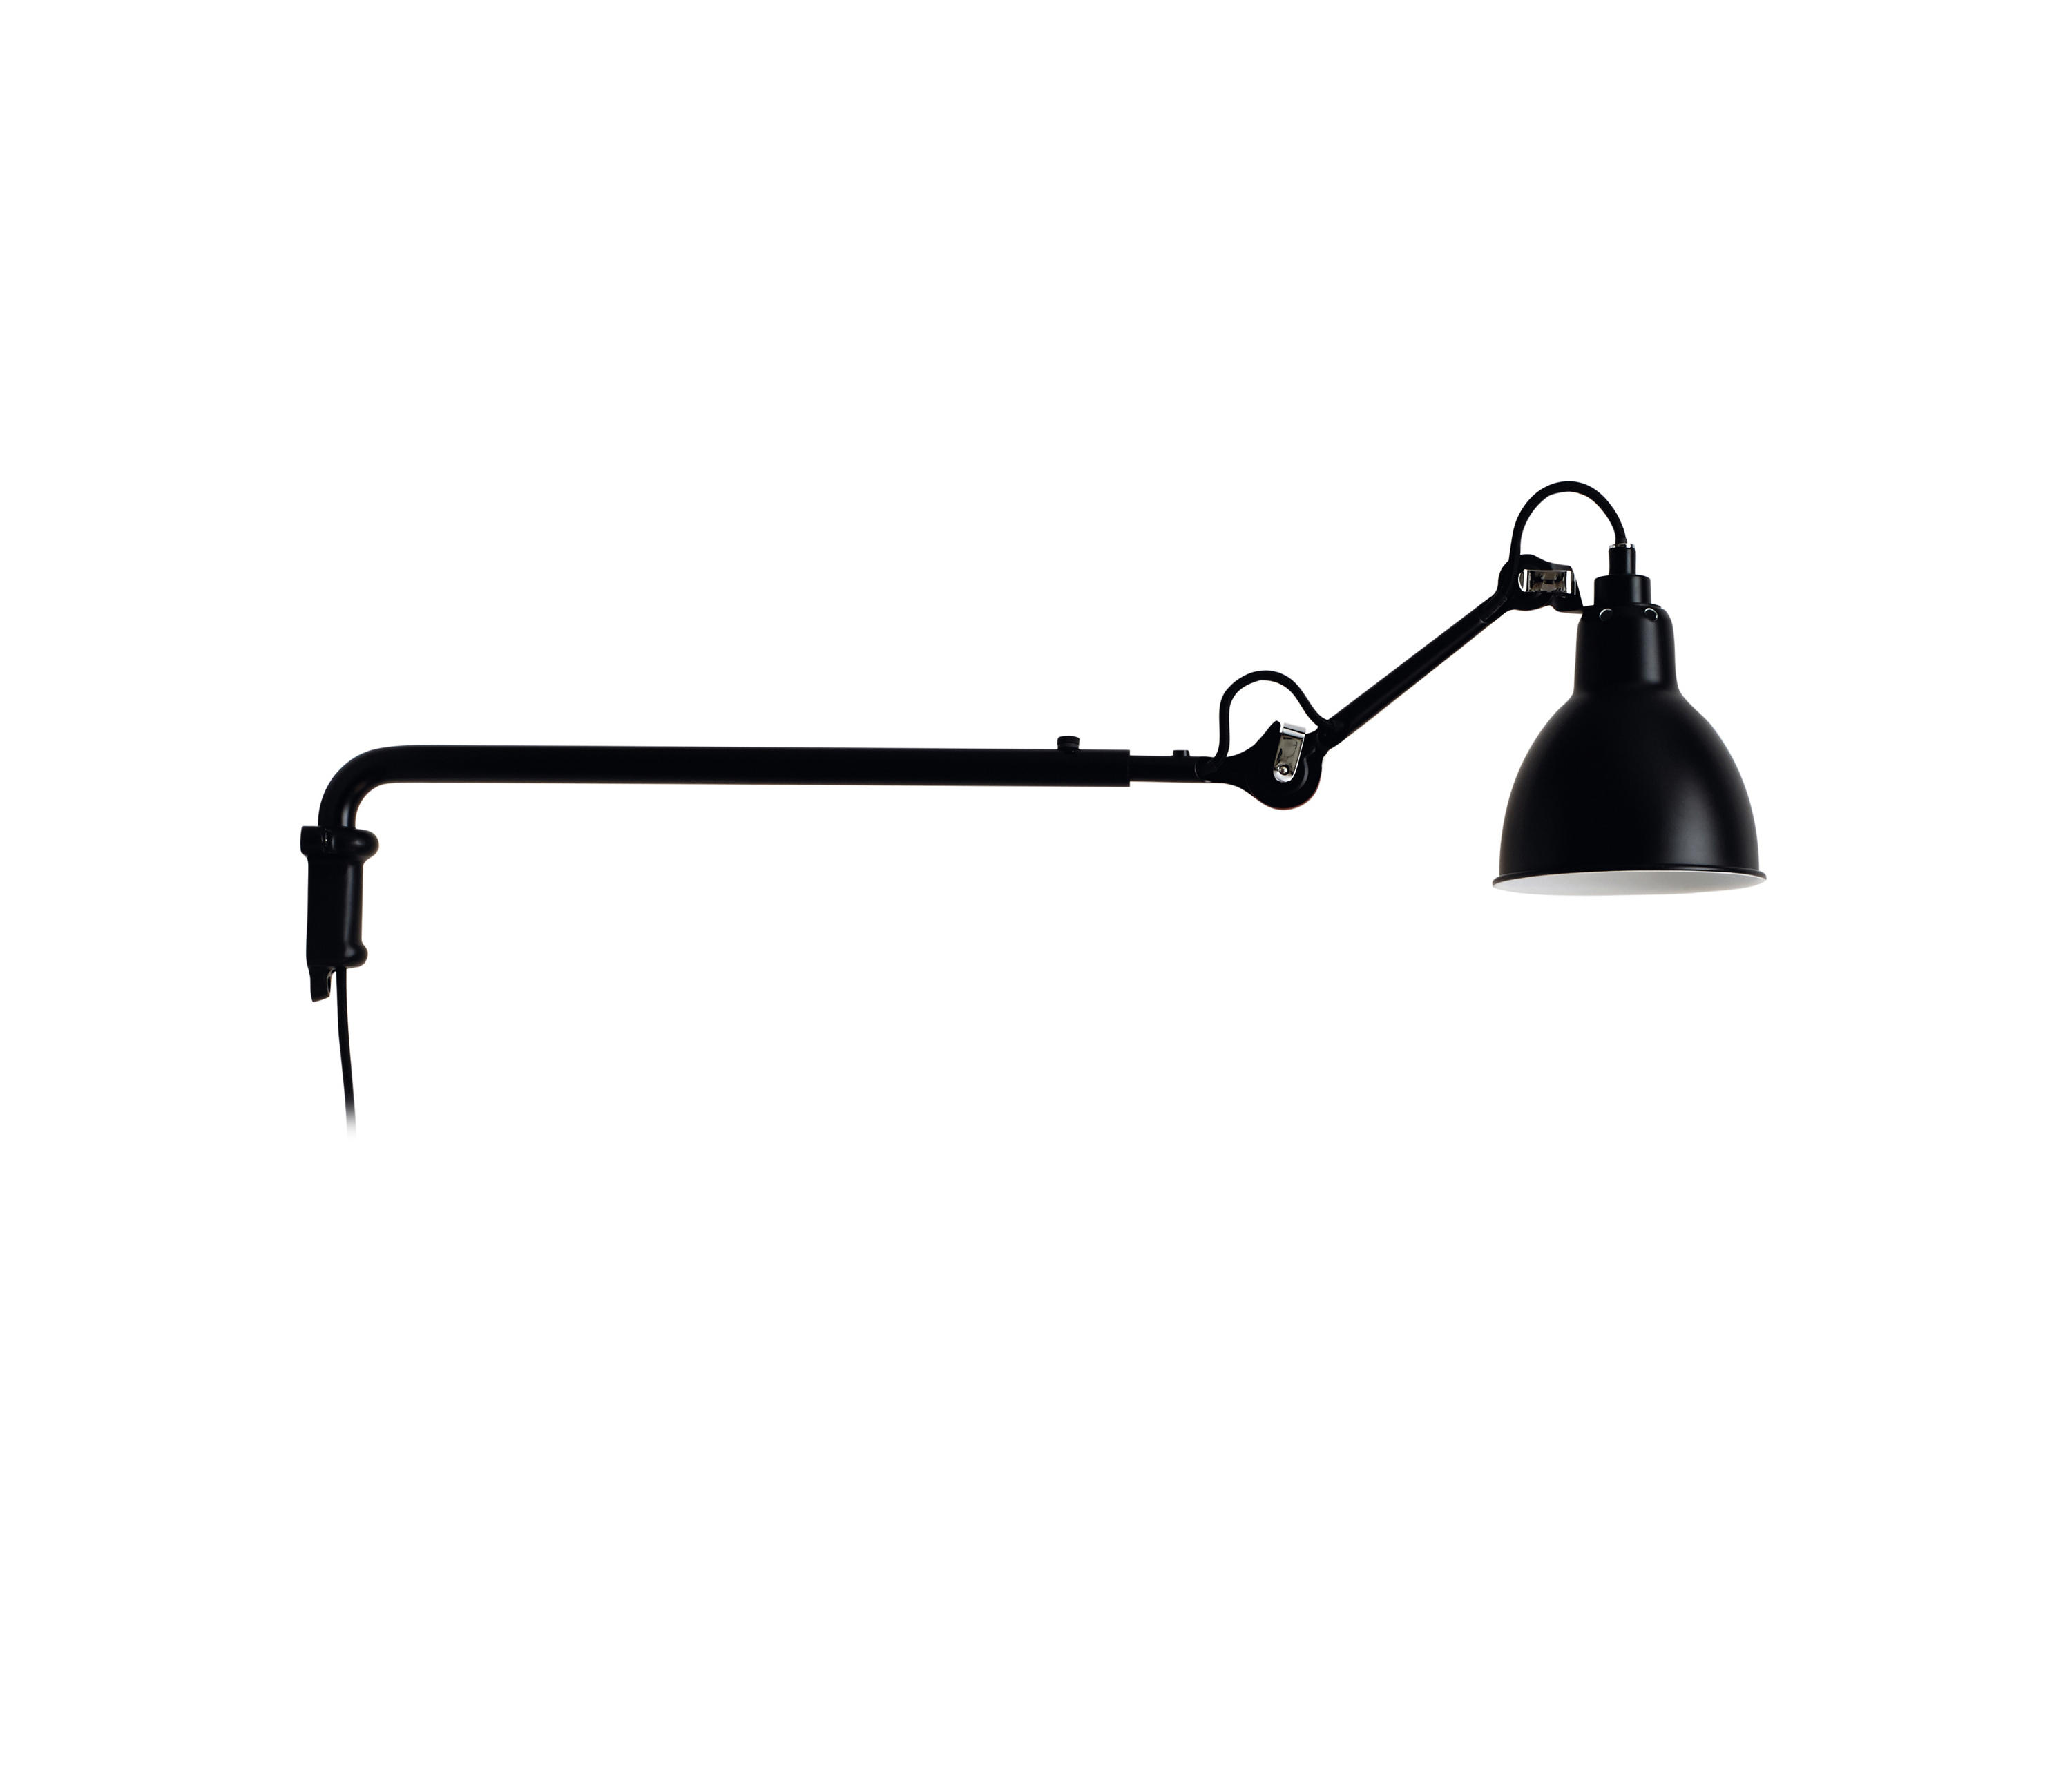 lampe gras n 203 black general lighting from dcw ditions architonic. Black Bedroom Furniture Sets. Home Design Ideas